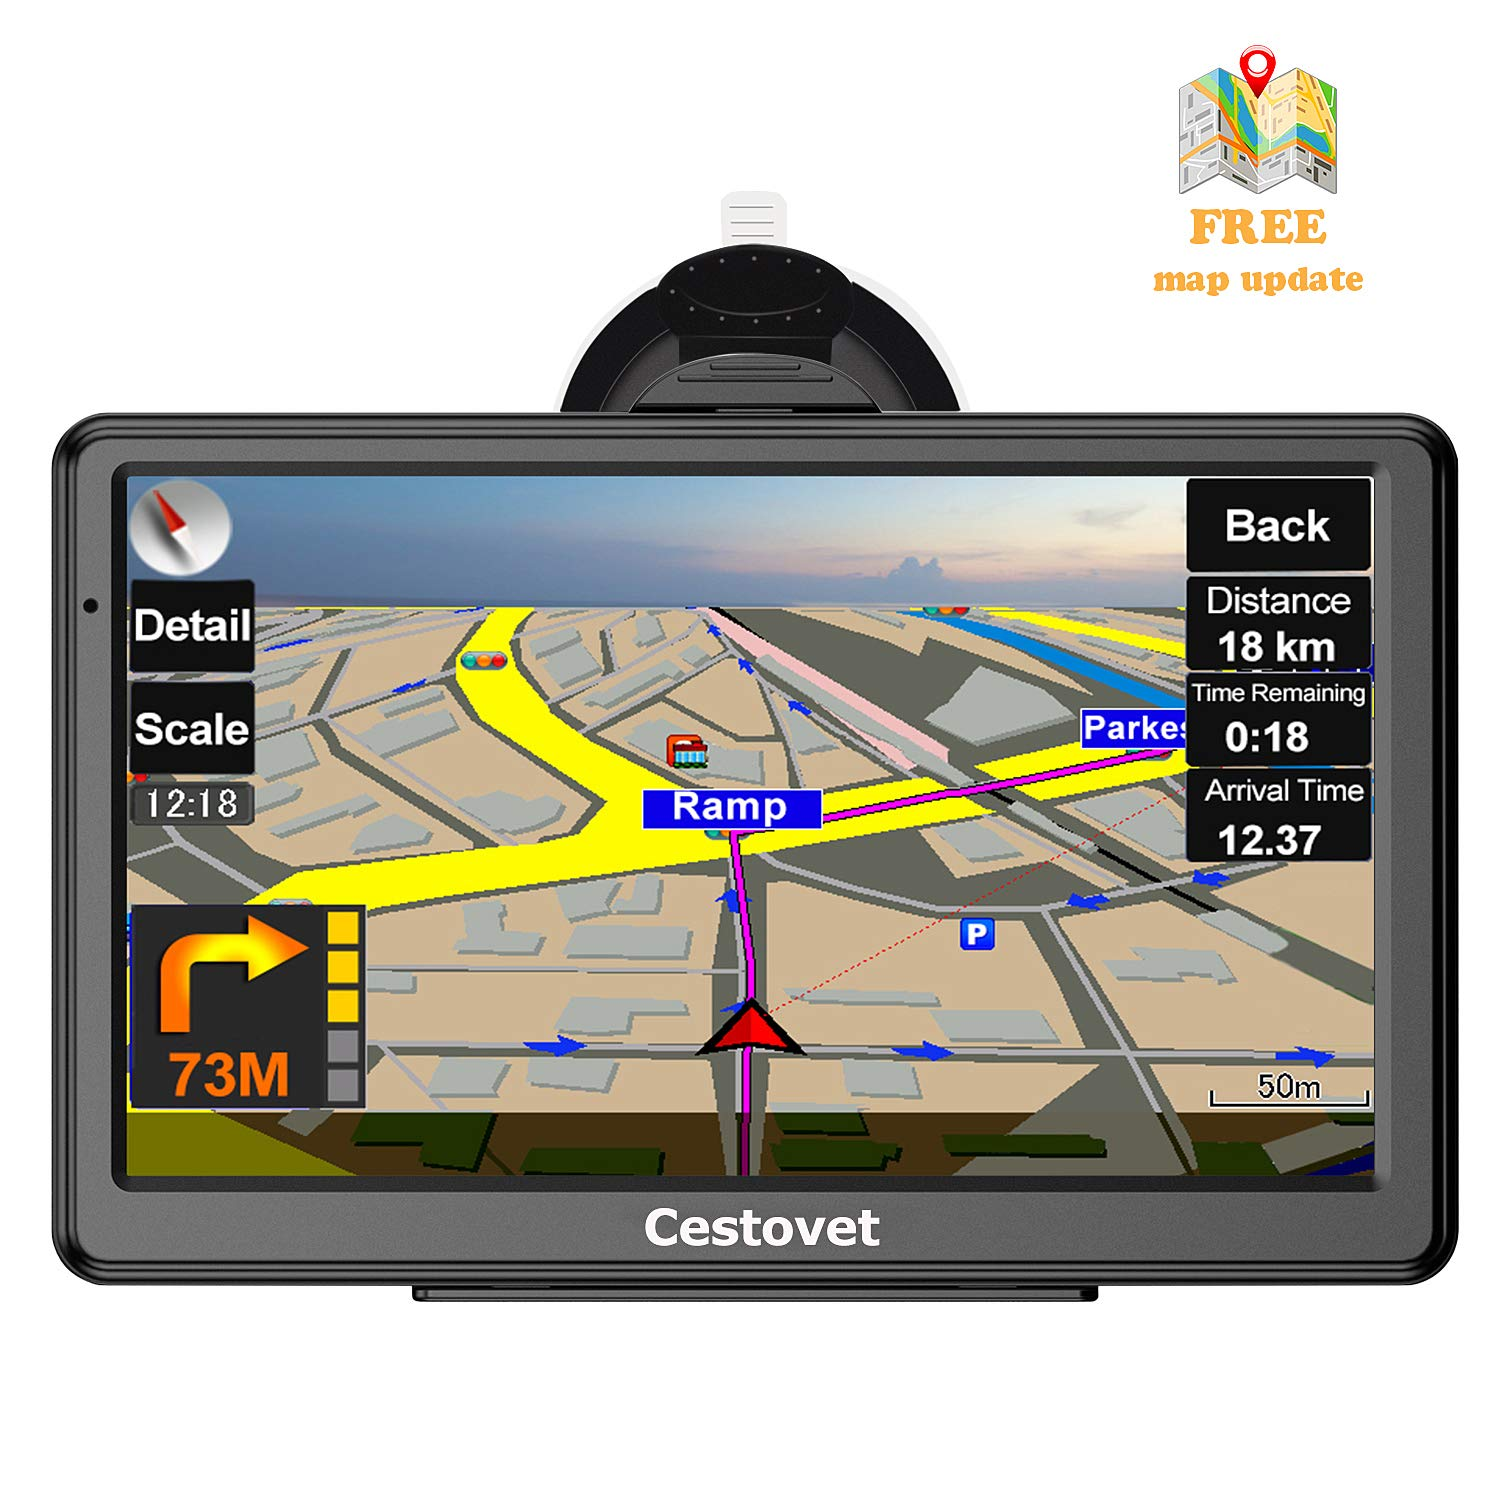 GPS Navigation for Car, 7 Inch HD Touch Screen GPS Navigation System Voice Broadcast Navigation, Free North America Map Updata Contains USA, Canada, Mexico map by Cestovet